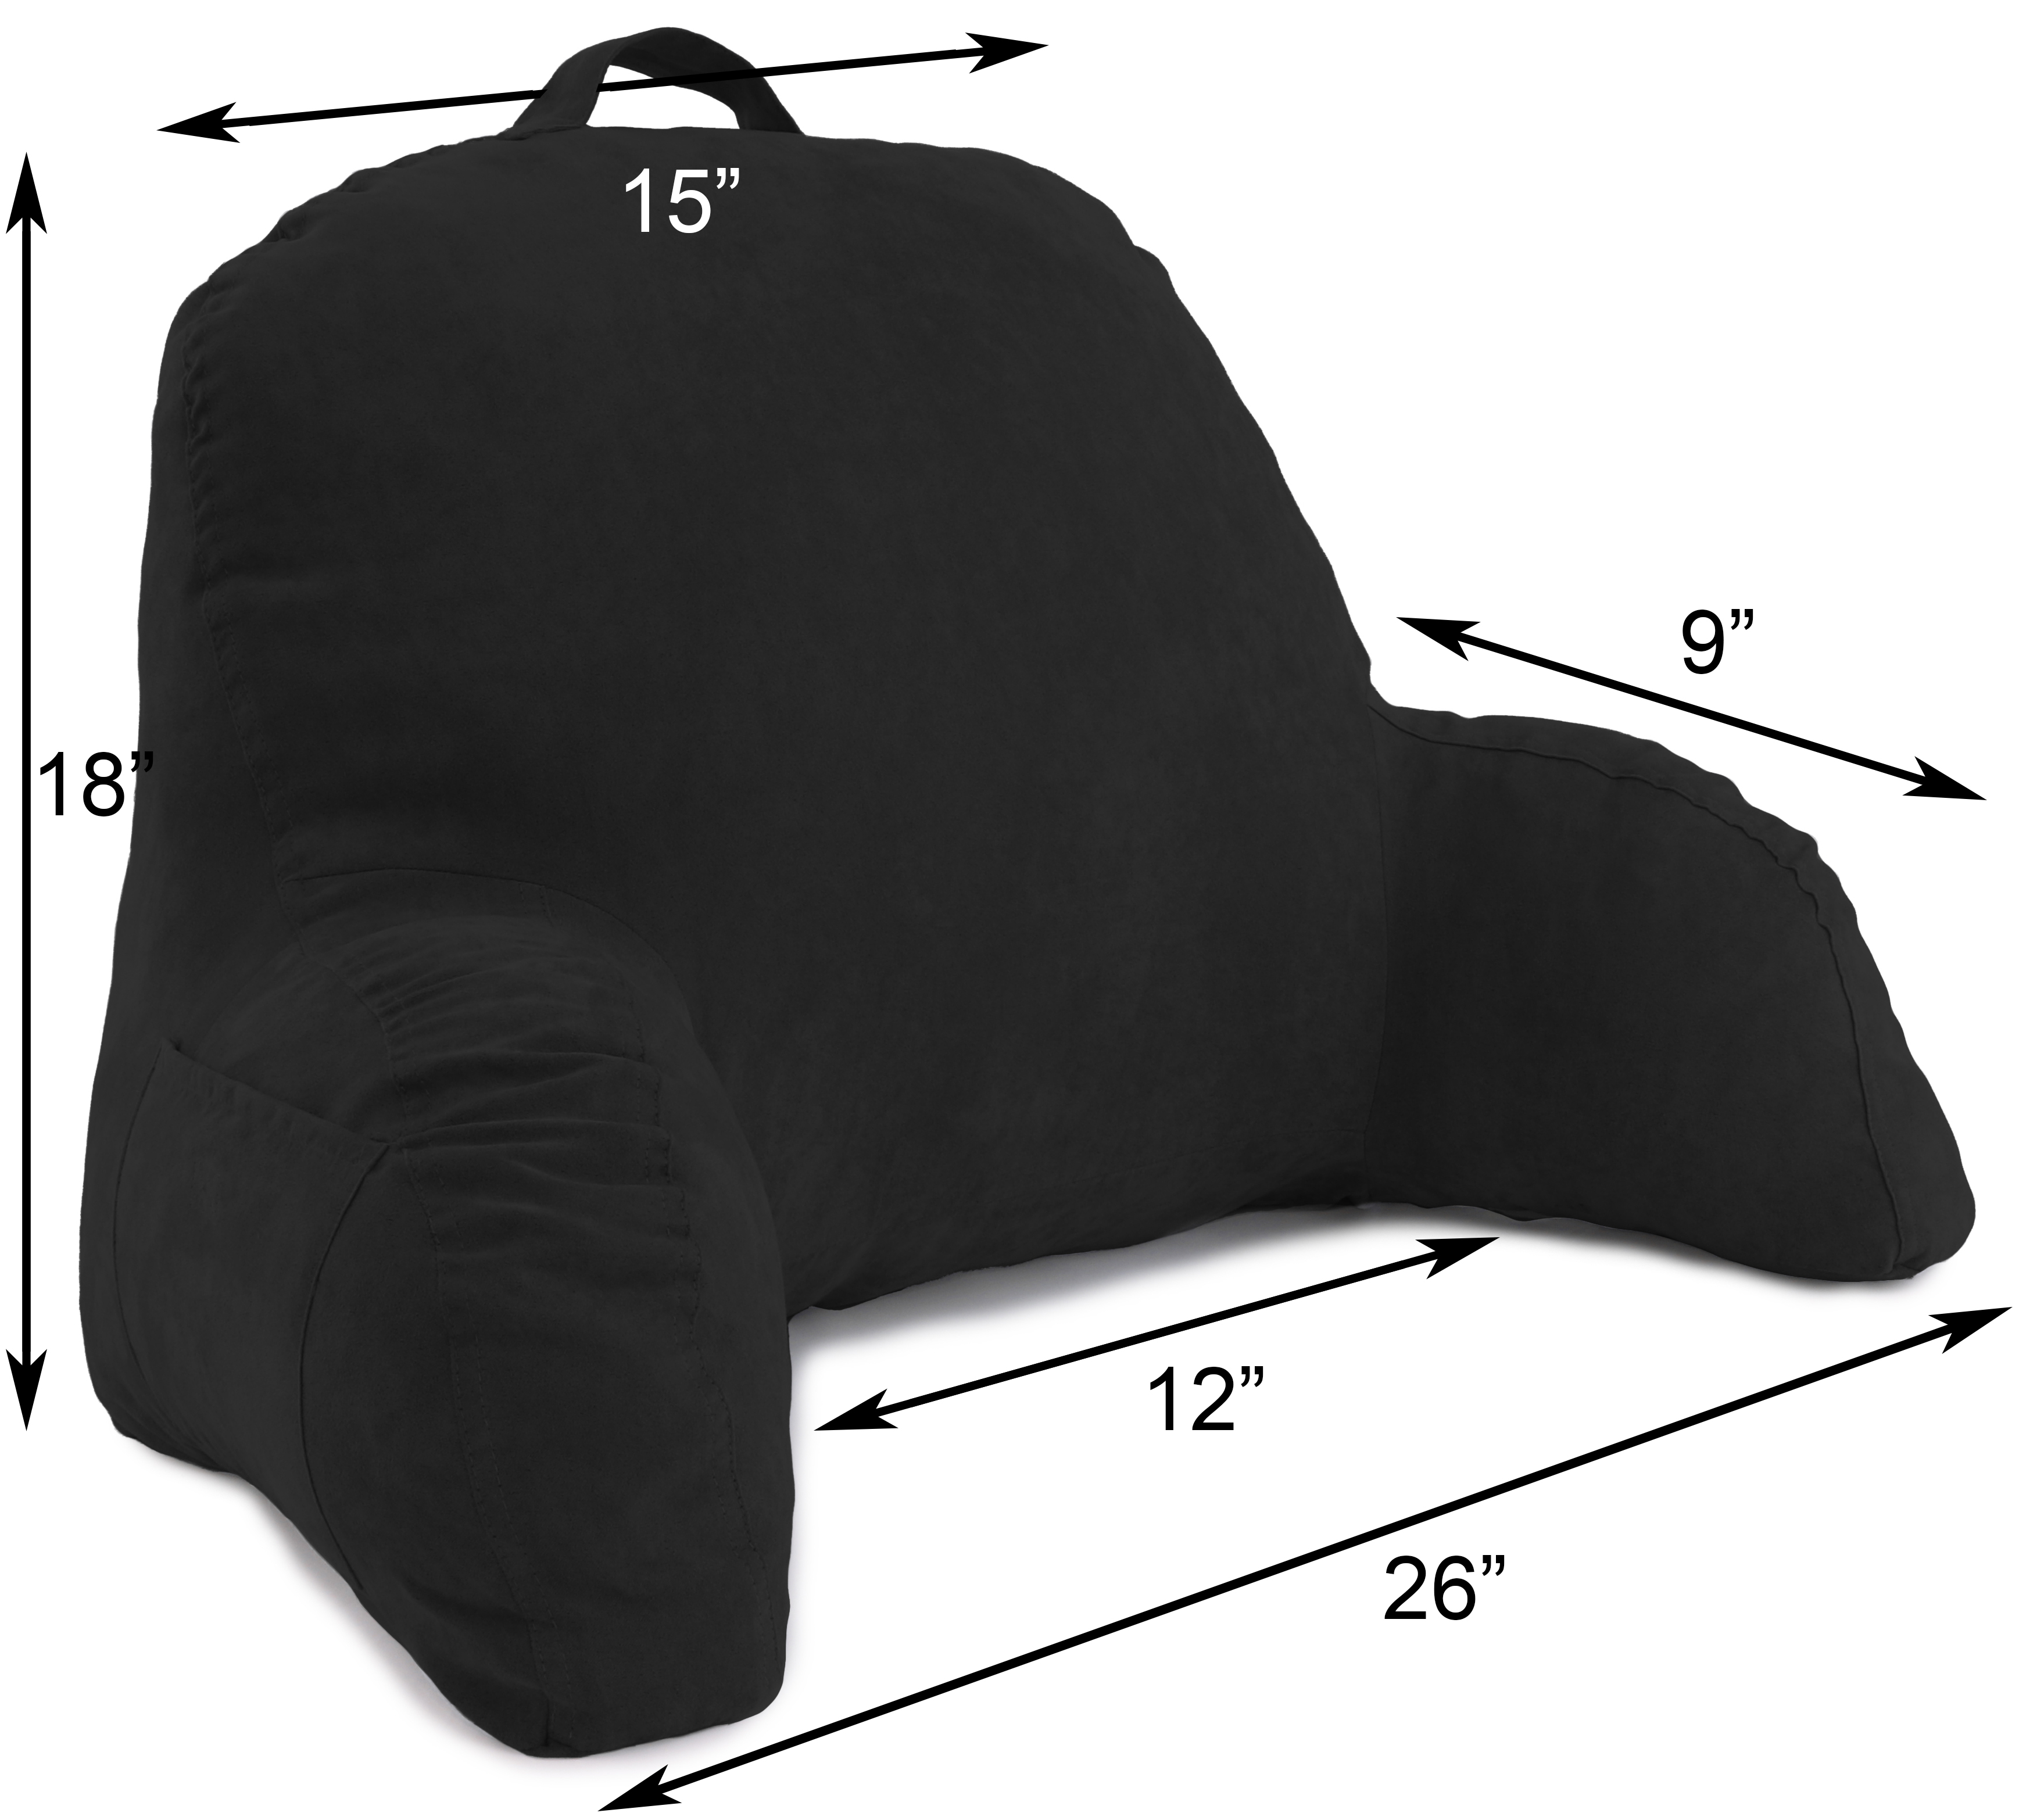 Microsuede-Bed-Rest-Reading-and-Bed-Rest-Lounger-Bed-Pillow thumbnail 5